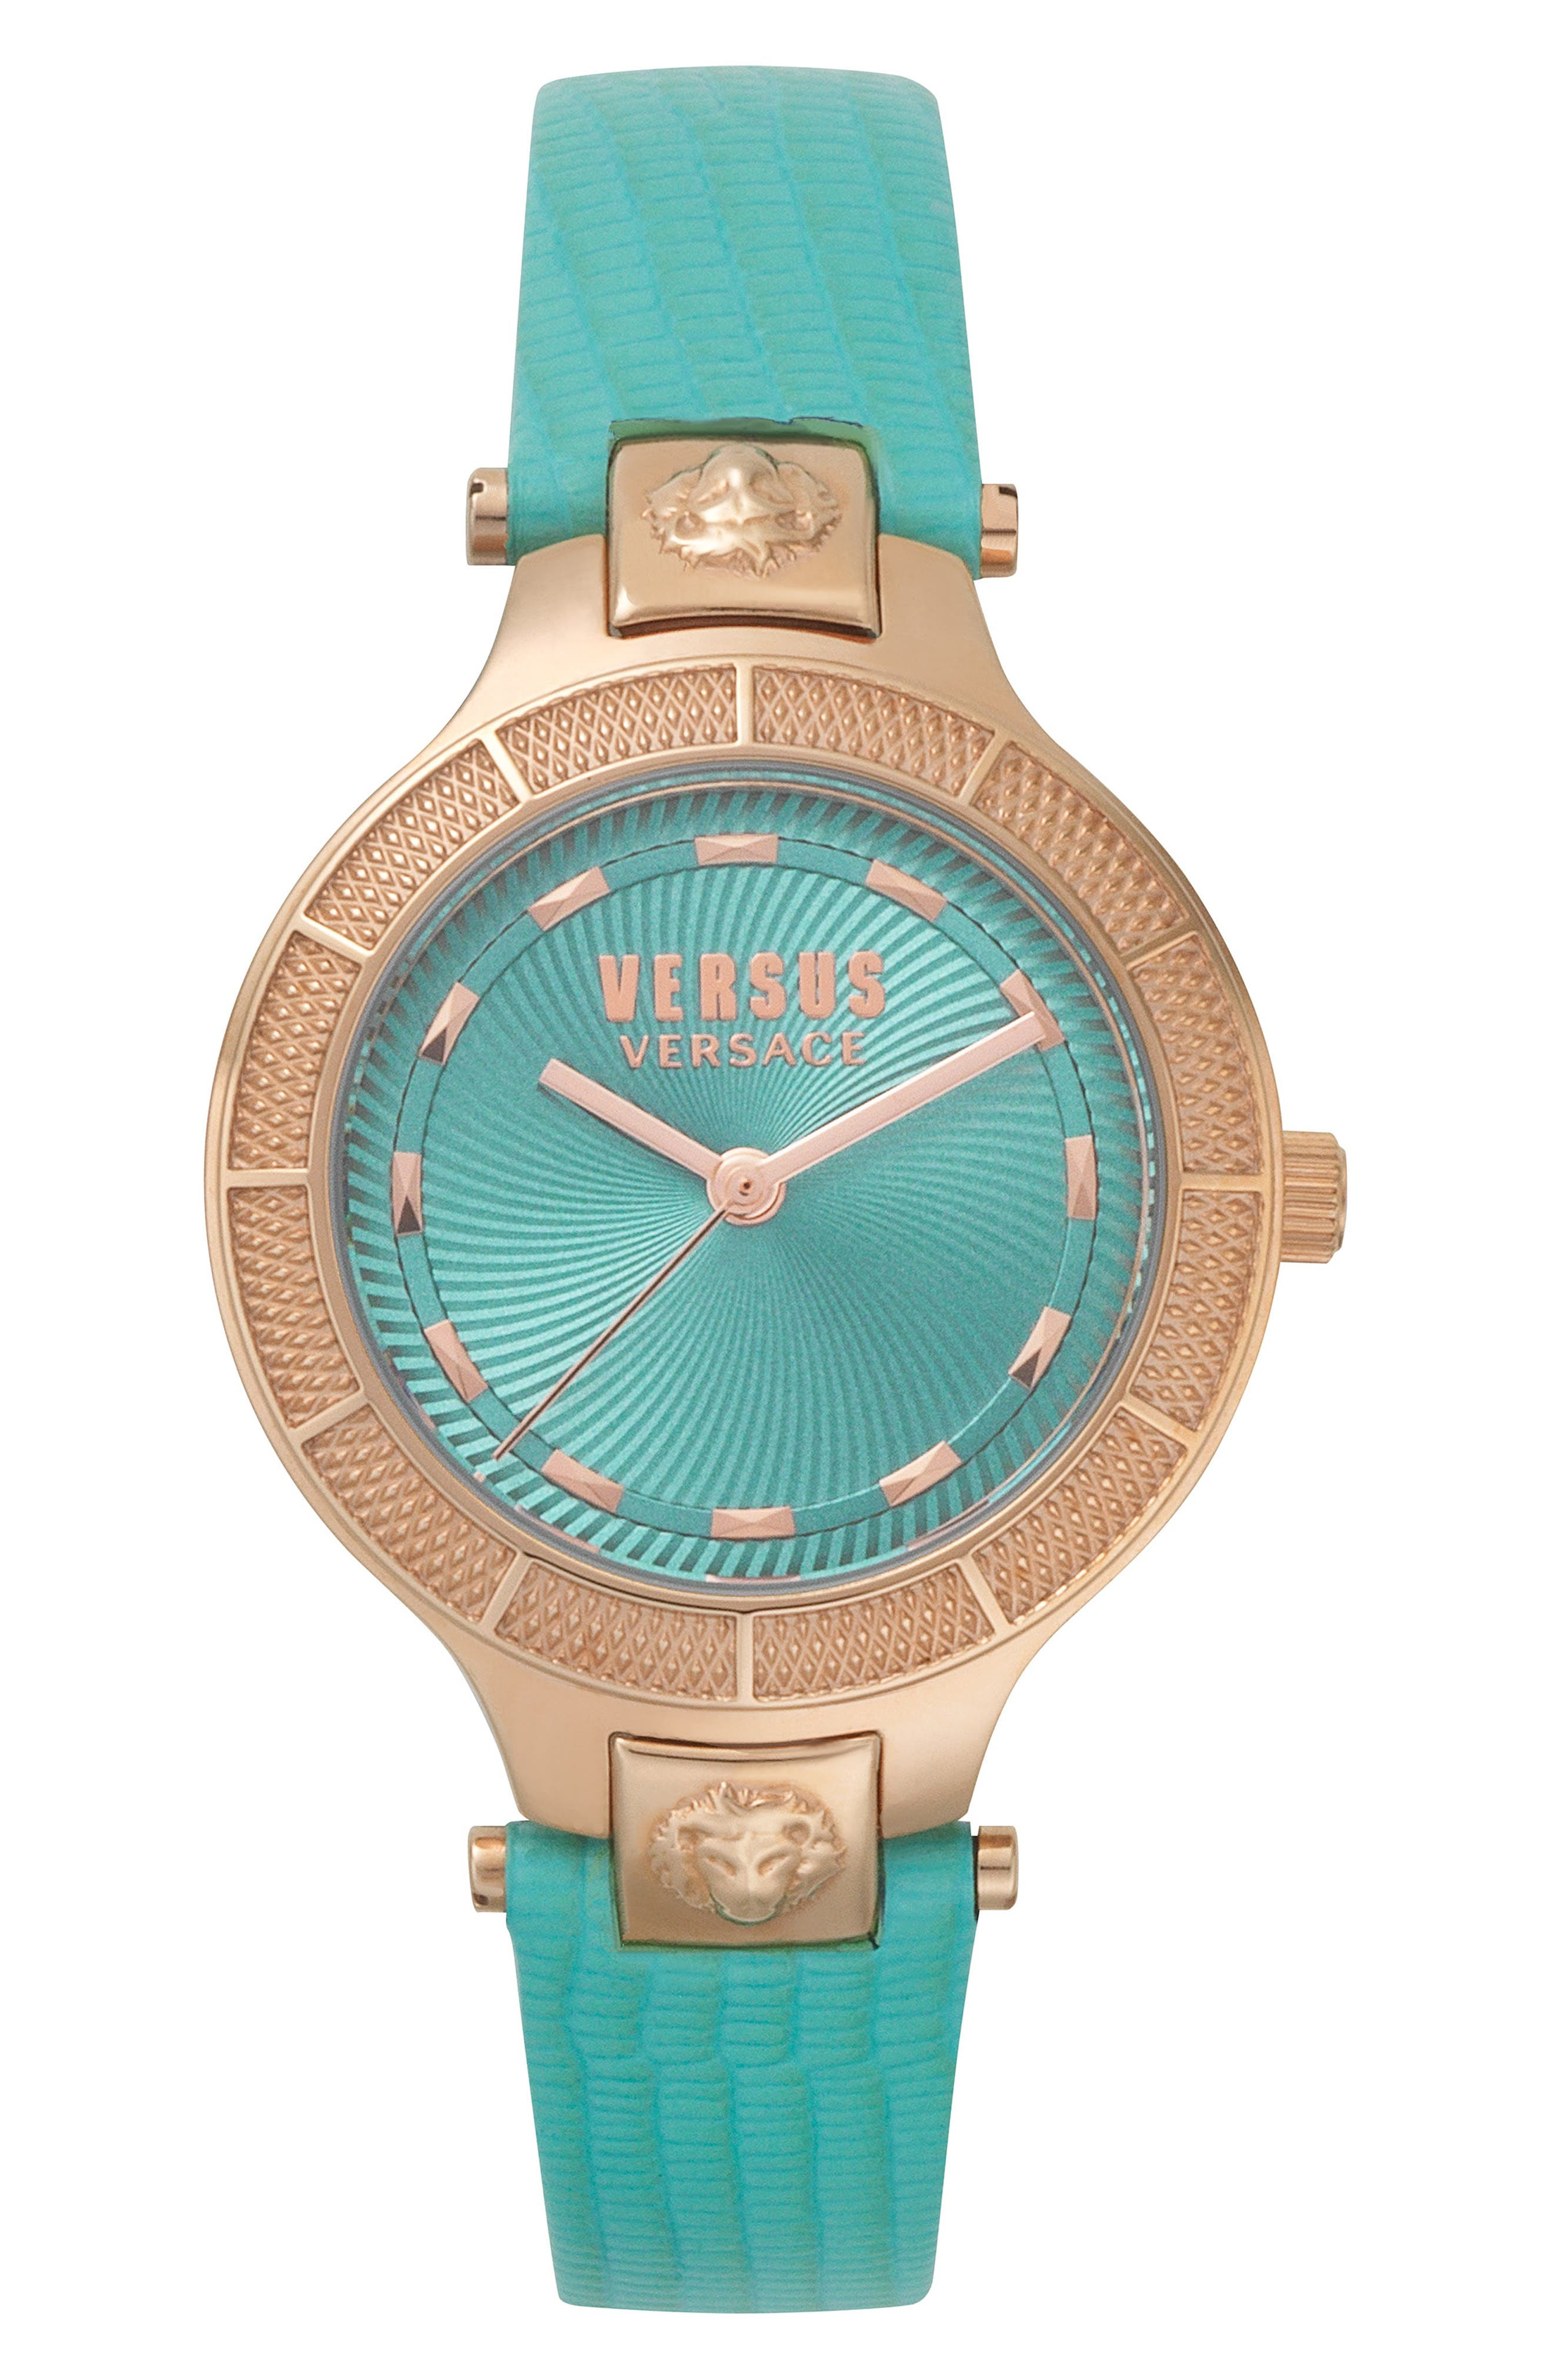 VERSUS VERSACE, Claremont Leather Strap Watch, 32mm, Main thumbnail 1, color, GREEN/ ROSE GOLD